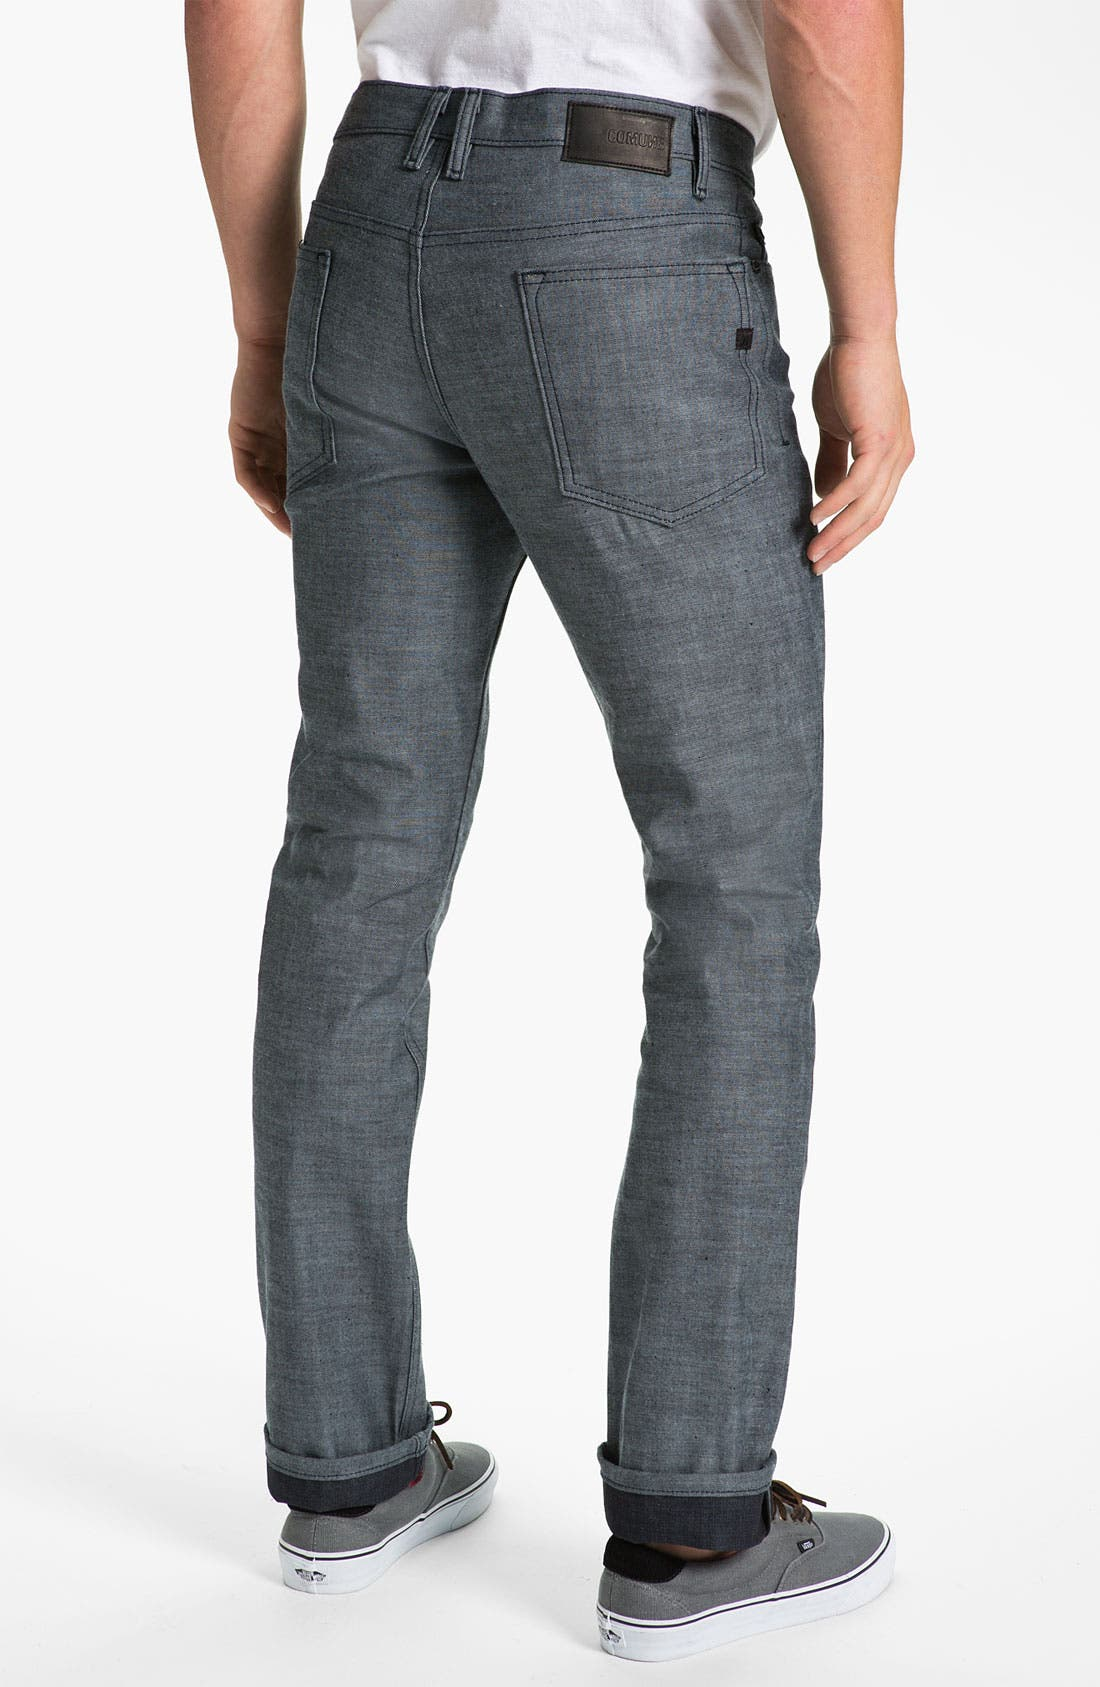 Main Image - Comune 'Ricky' Slim Straight Leg Jeans (Speckled Backside of Indigo)